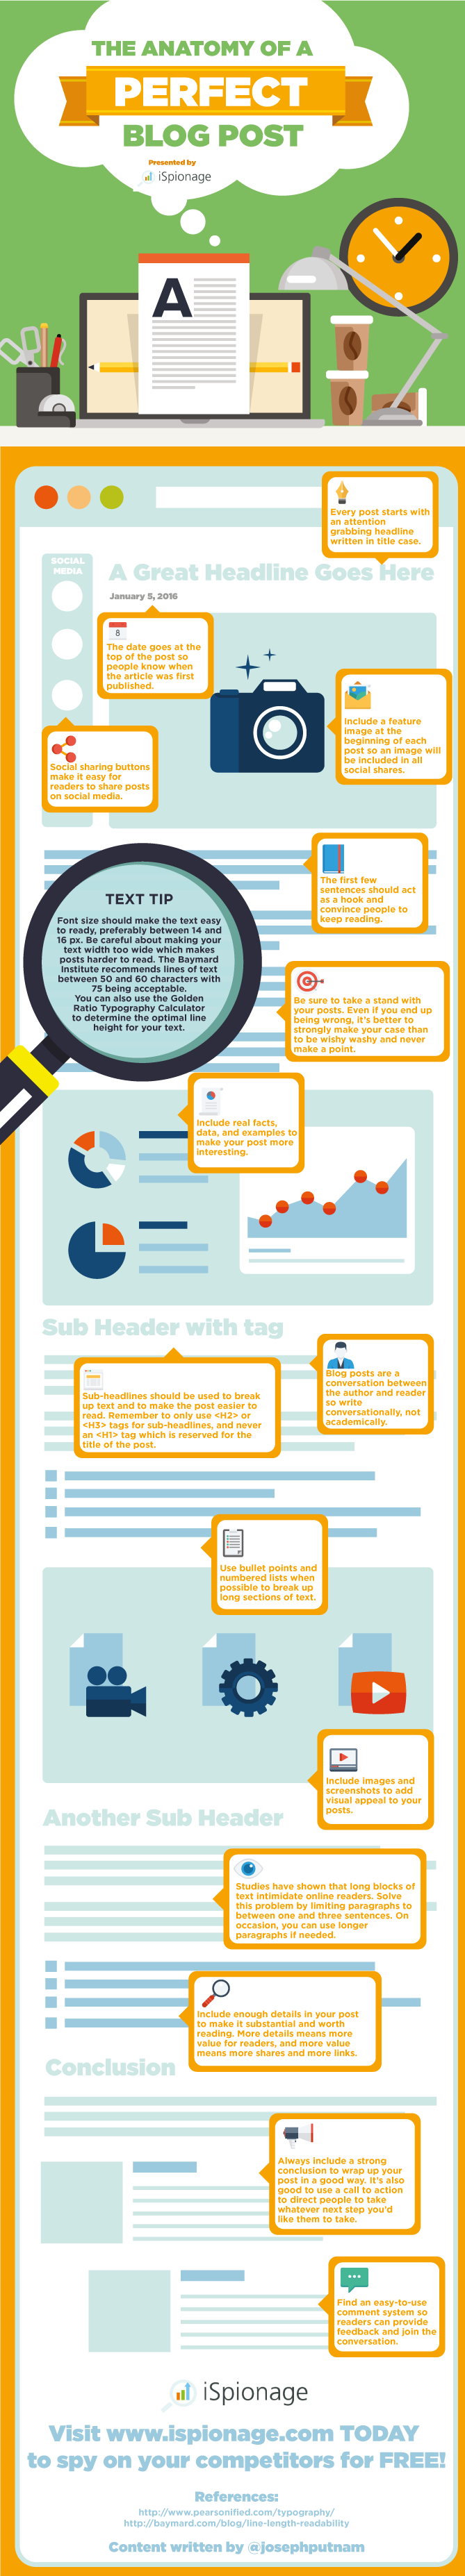 Anatomy of the Perfect Blog Post (Infographic)